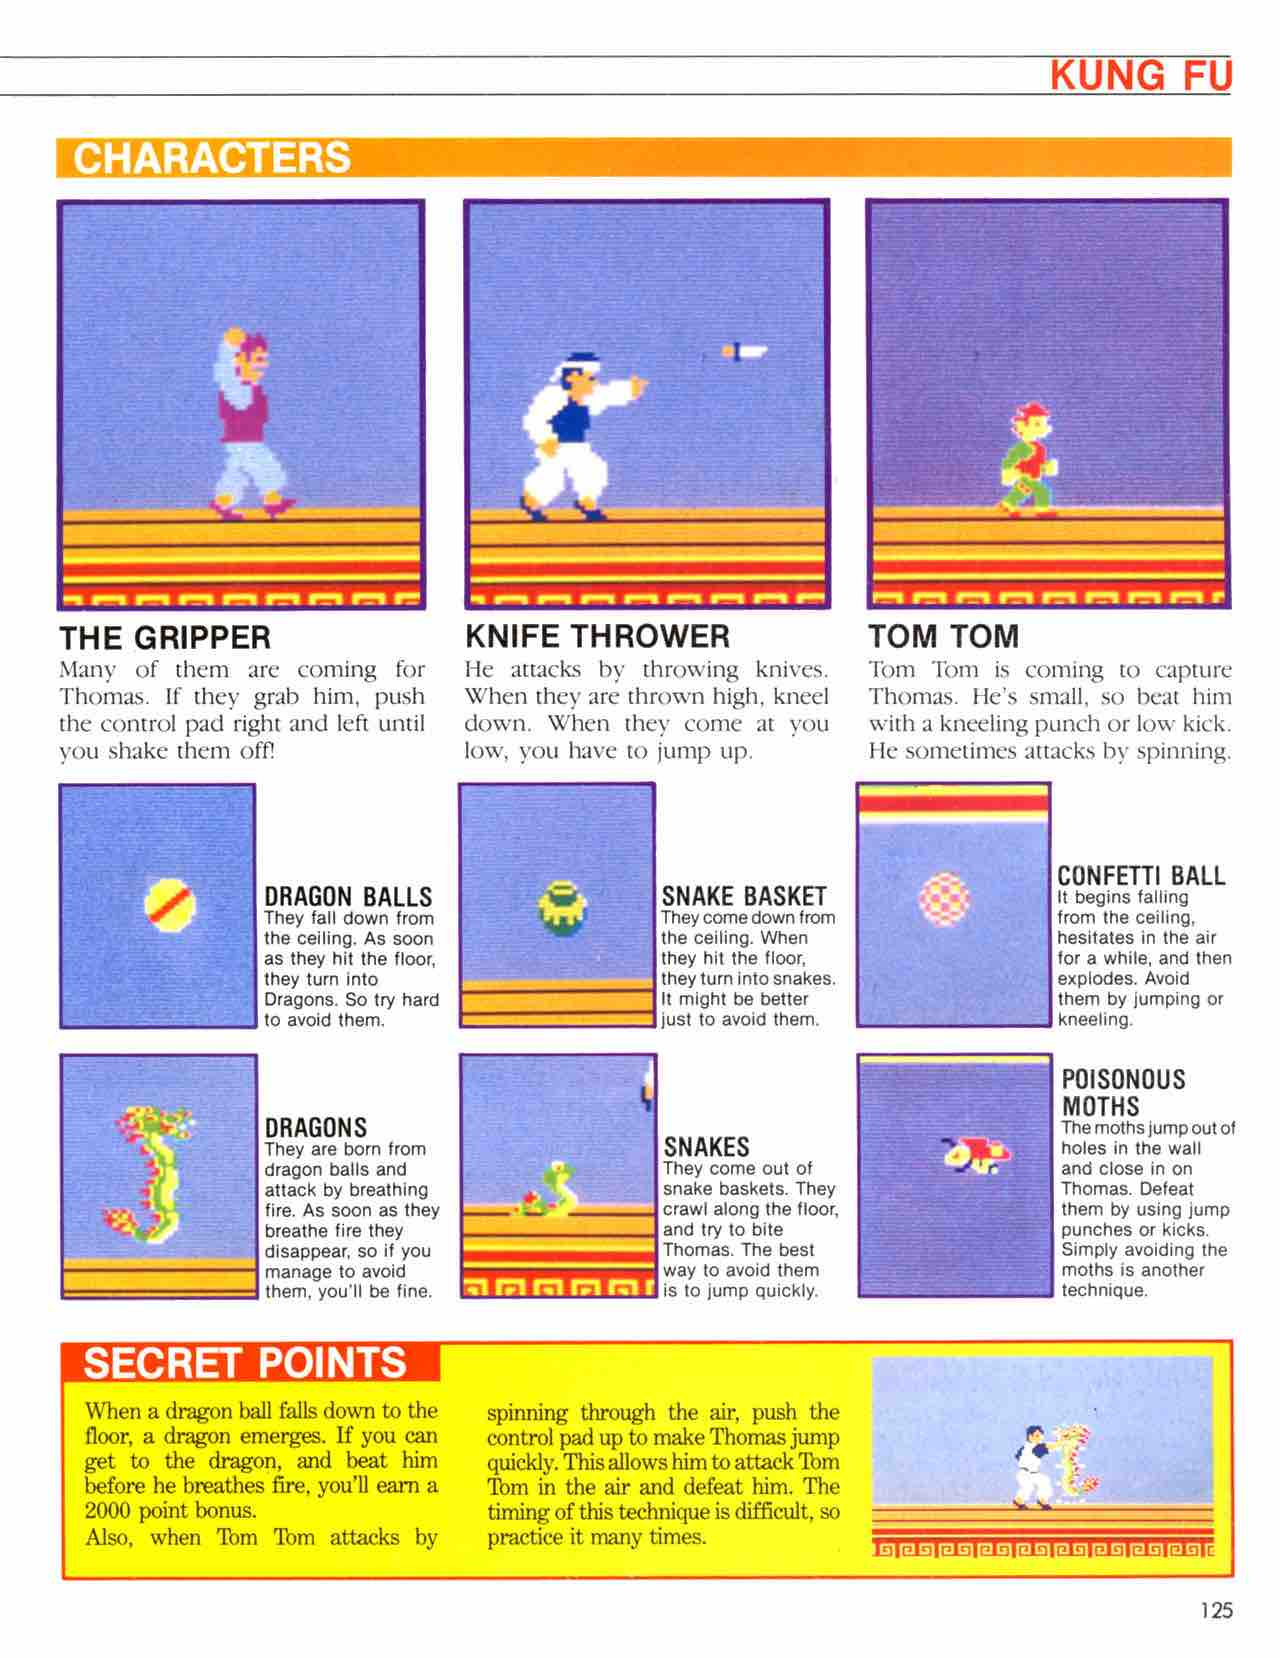 Official Nintendo Player's Guide Pg 125